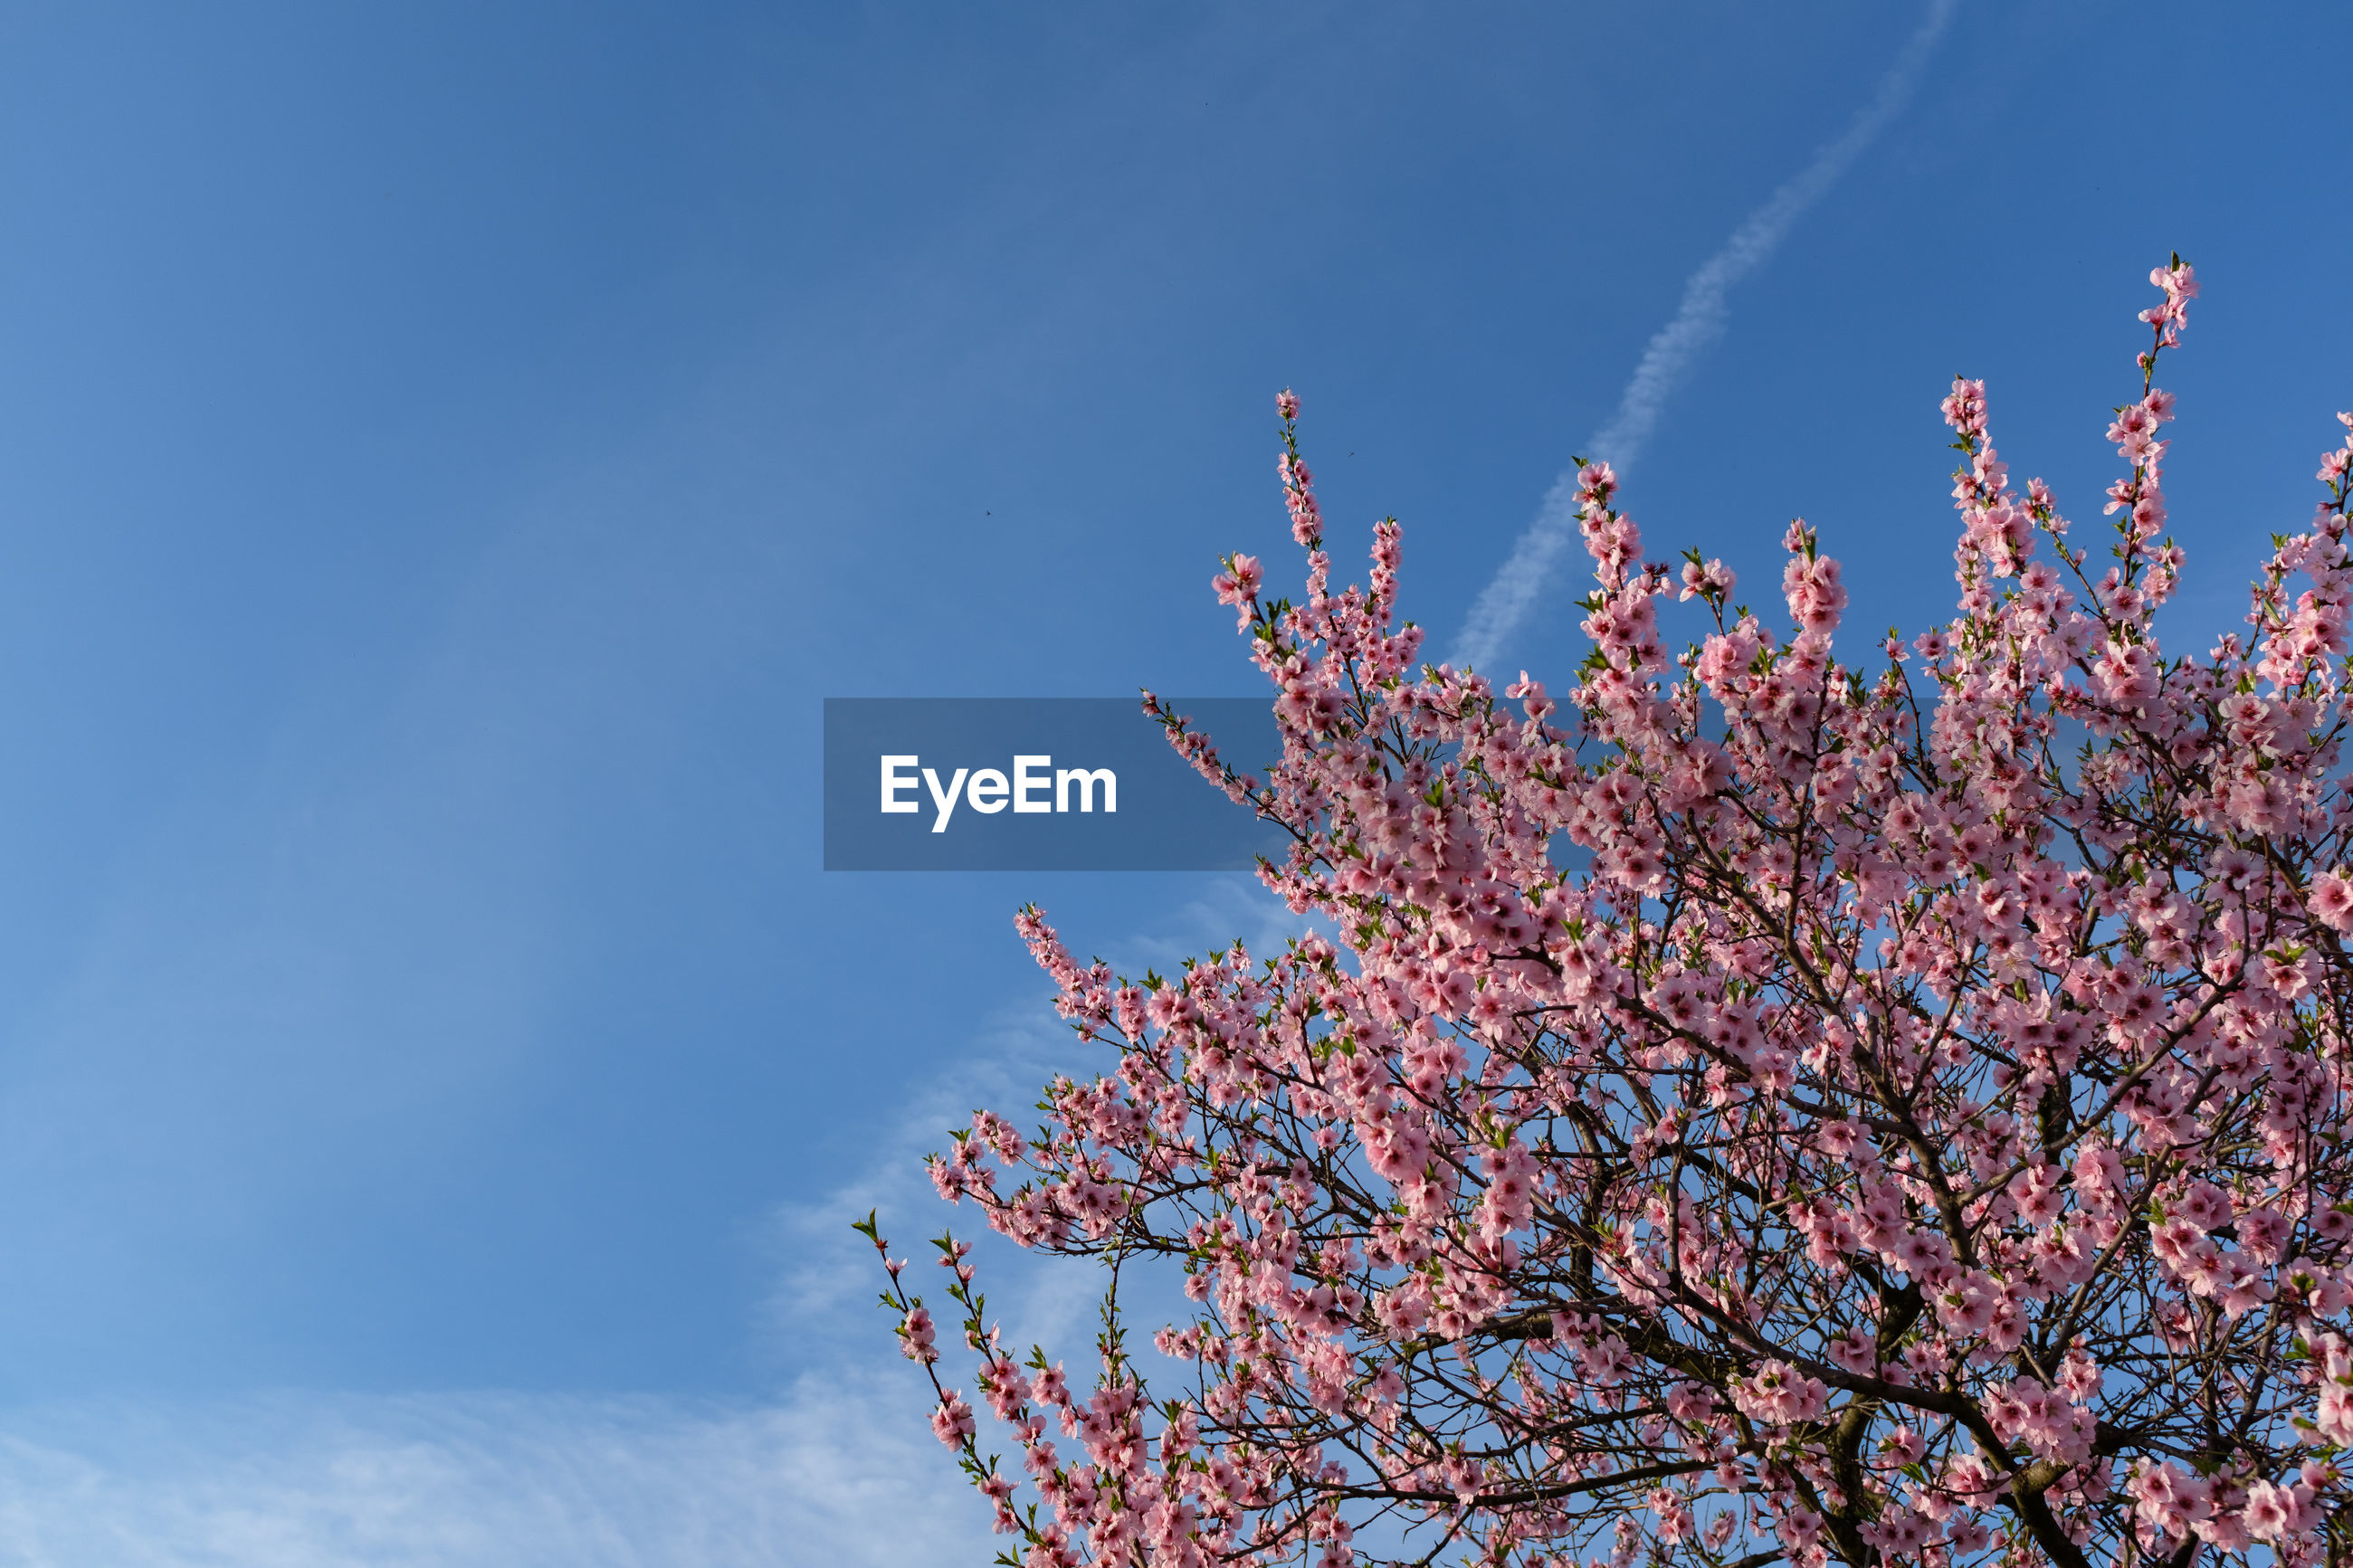 LOW ANGLE VIEW OF FLOWERS ON TREE AGAINST BLUE SKY